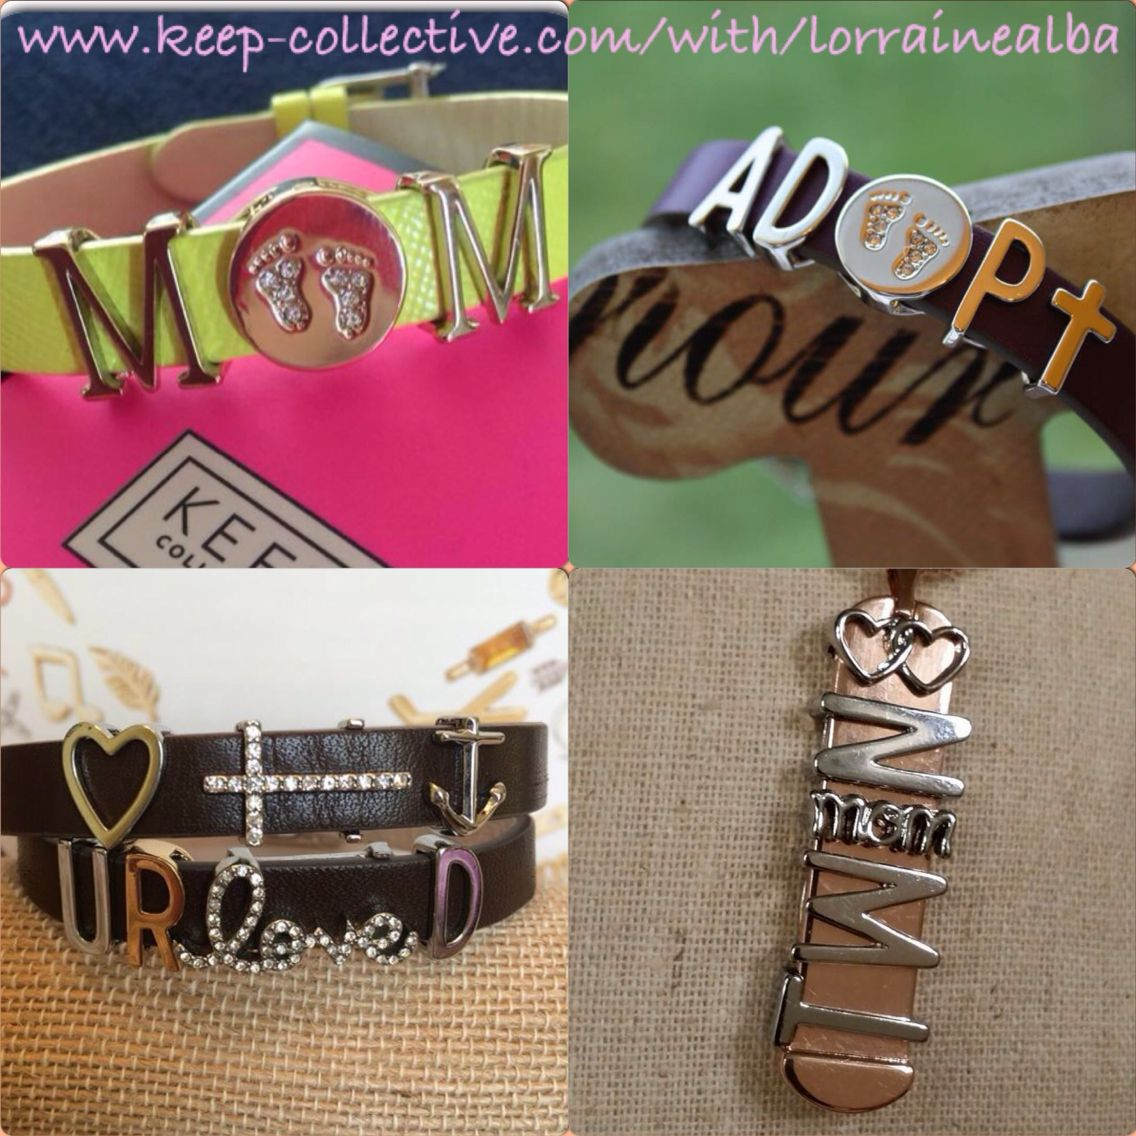 Create your own perfect Mother's Day for a mom who adopted or has twins! www.keep-collective.com/with/lorrainealba